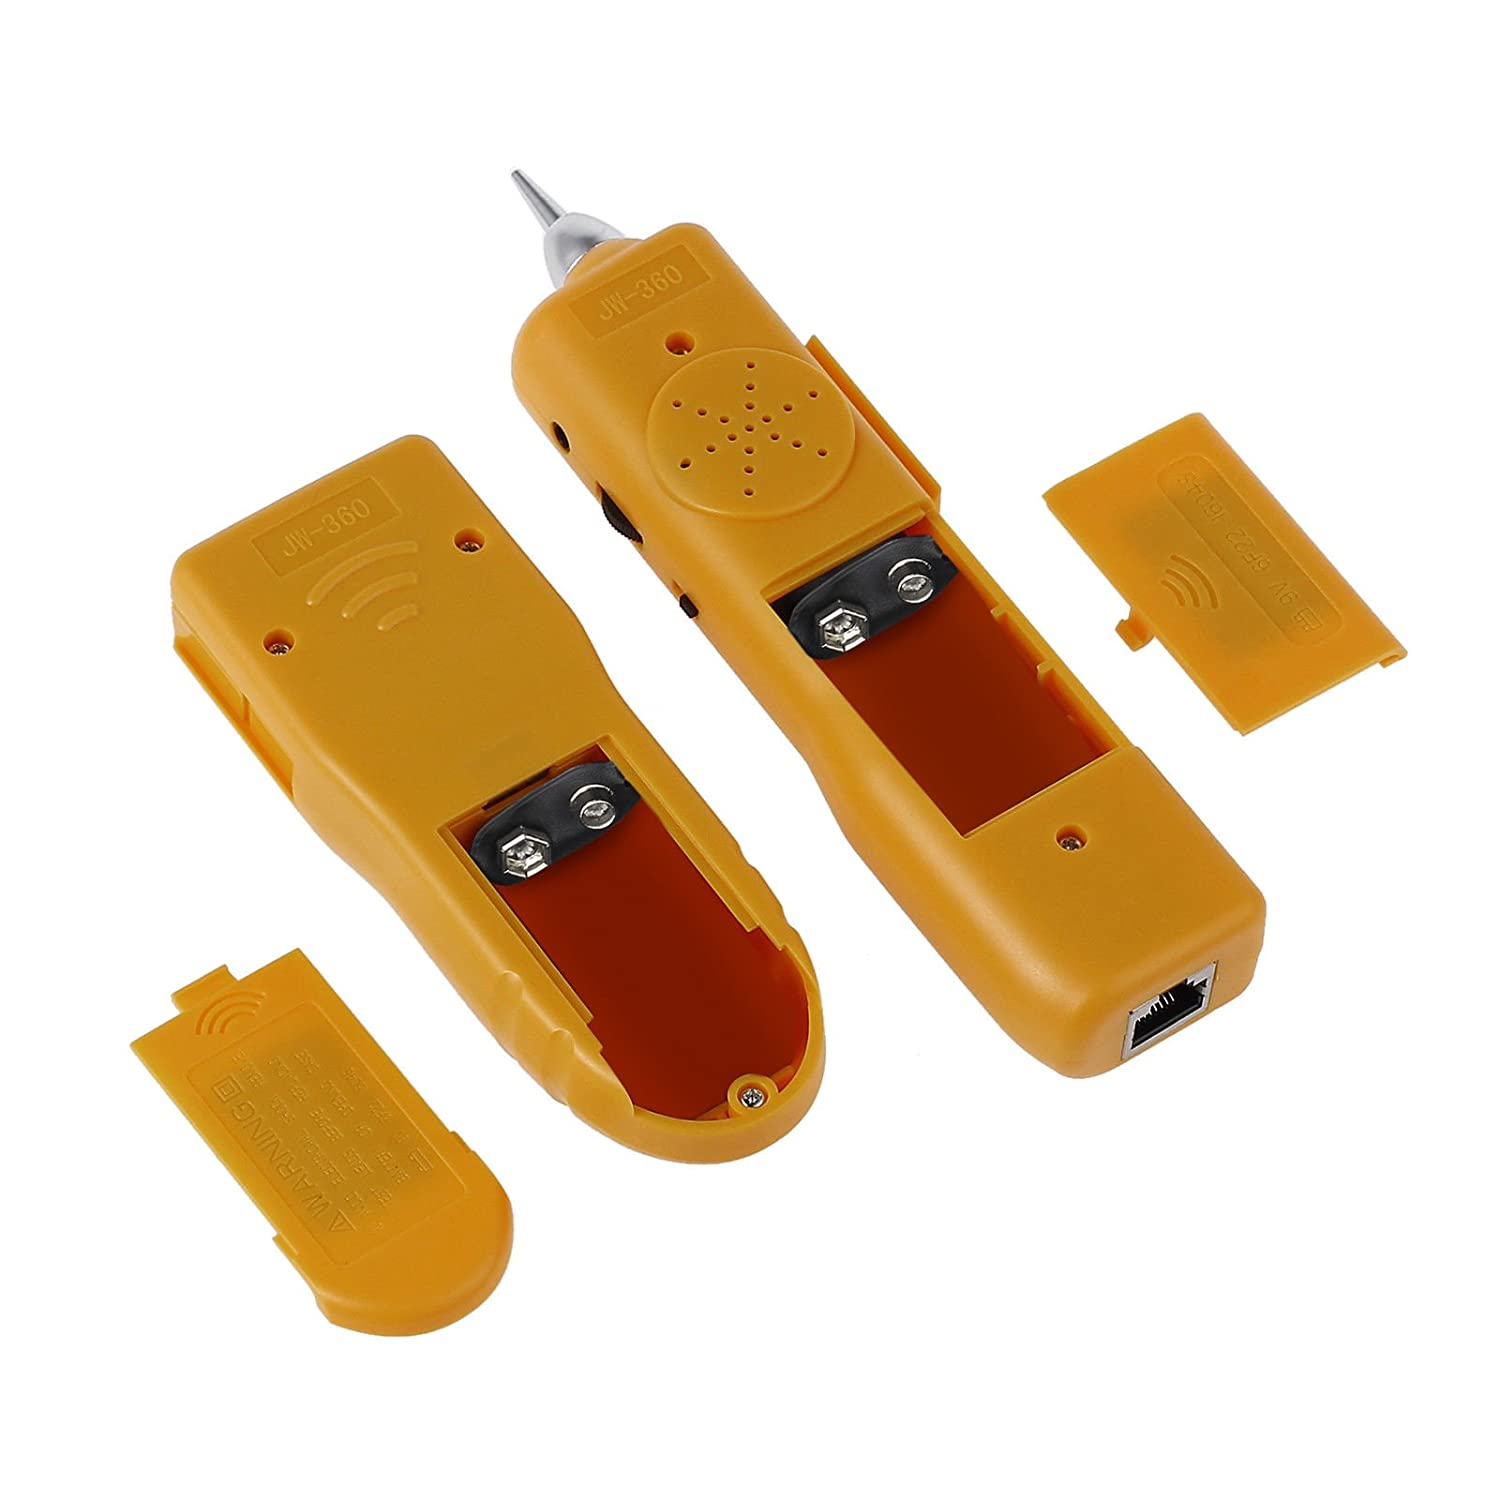 AUTOUTLET Professional Wire Tracking Set Cable Transmitter Receiver//Tracker RJ45 RJ11 Cable Tester Wire Line LAN Cable RJ Tracker Toner Tracer